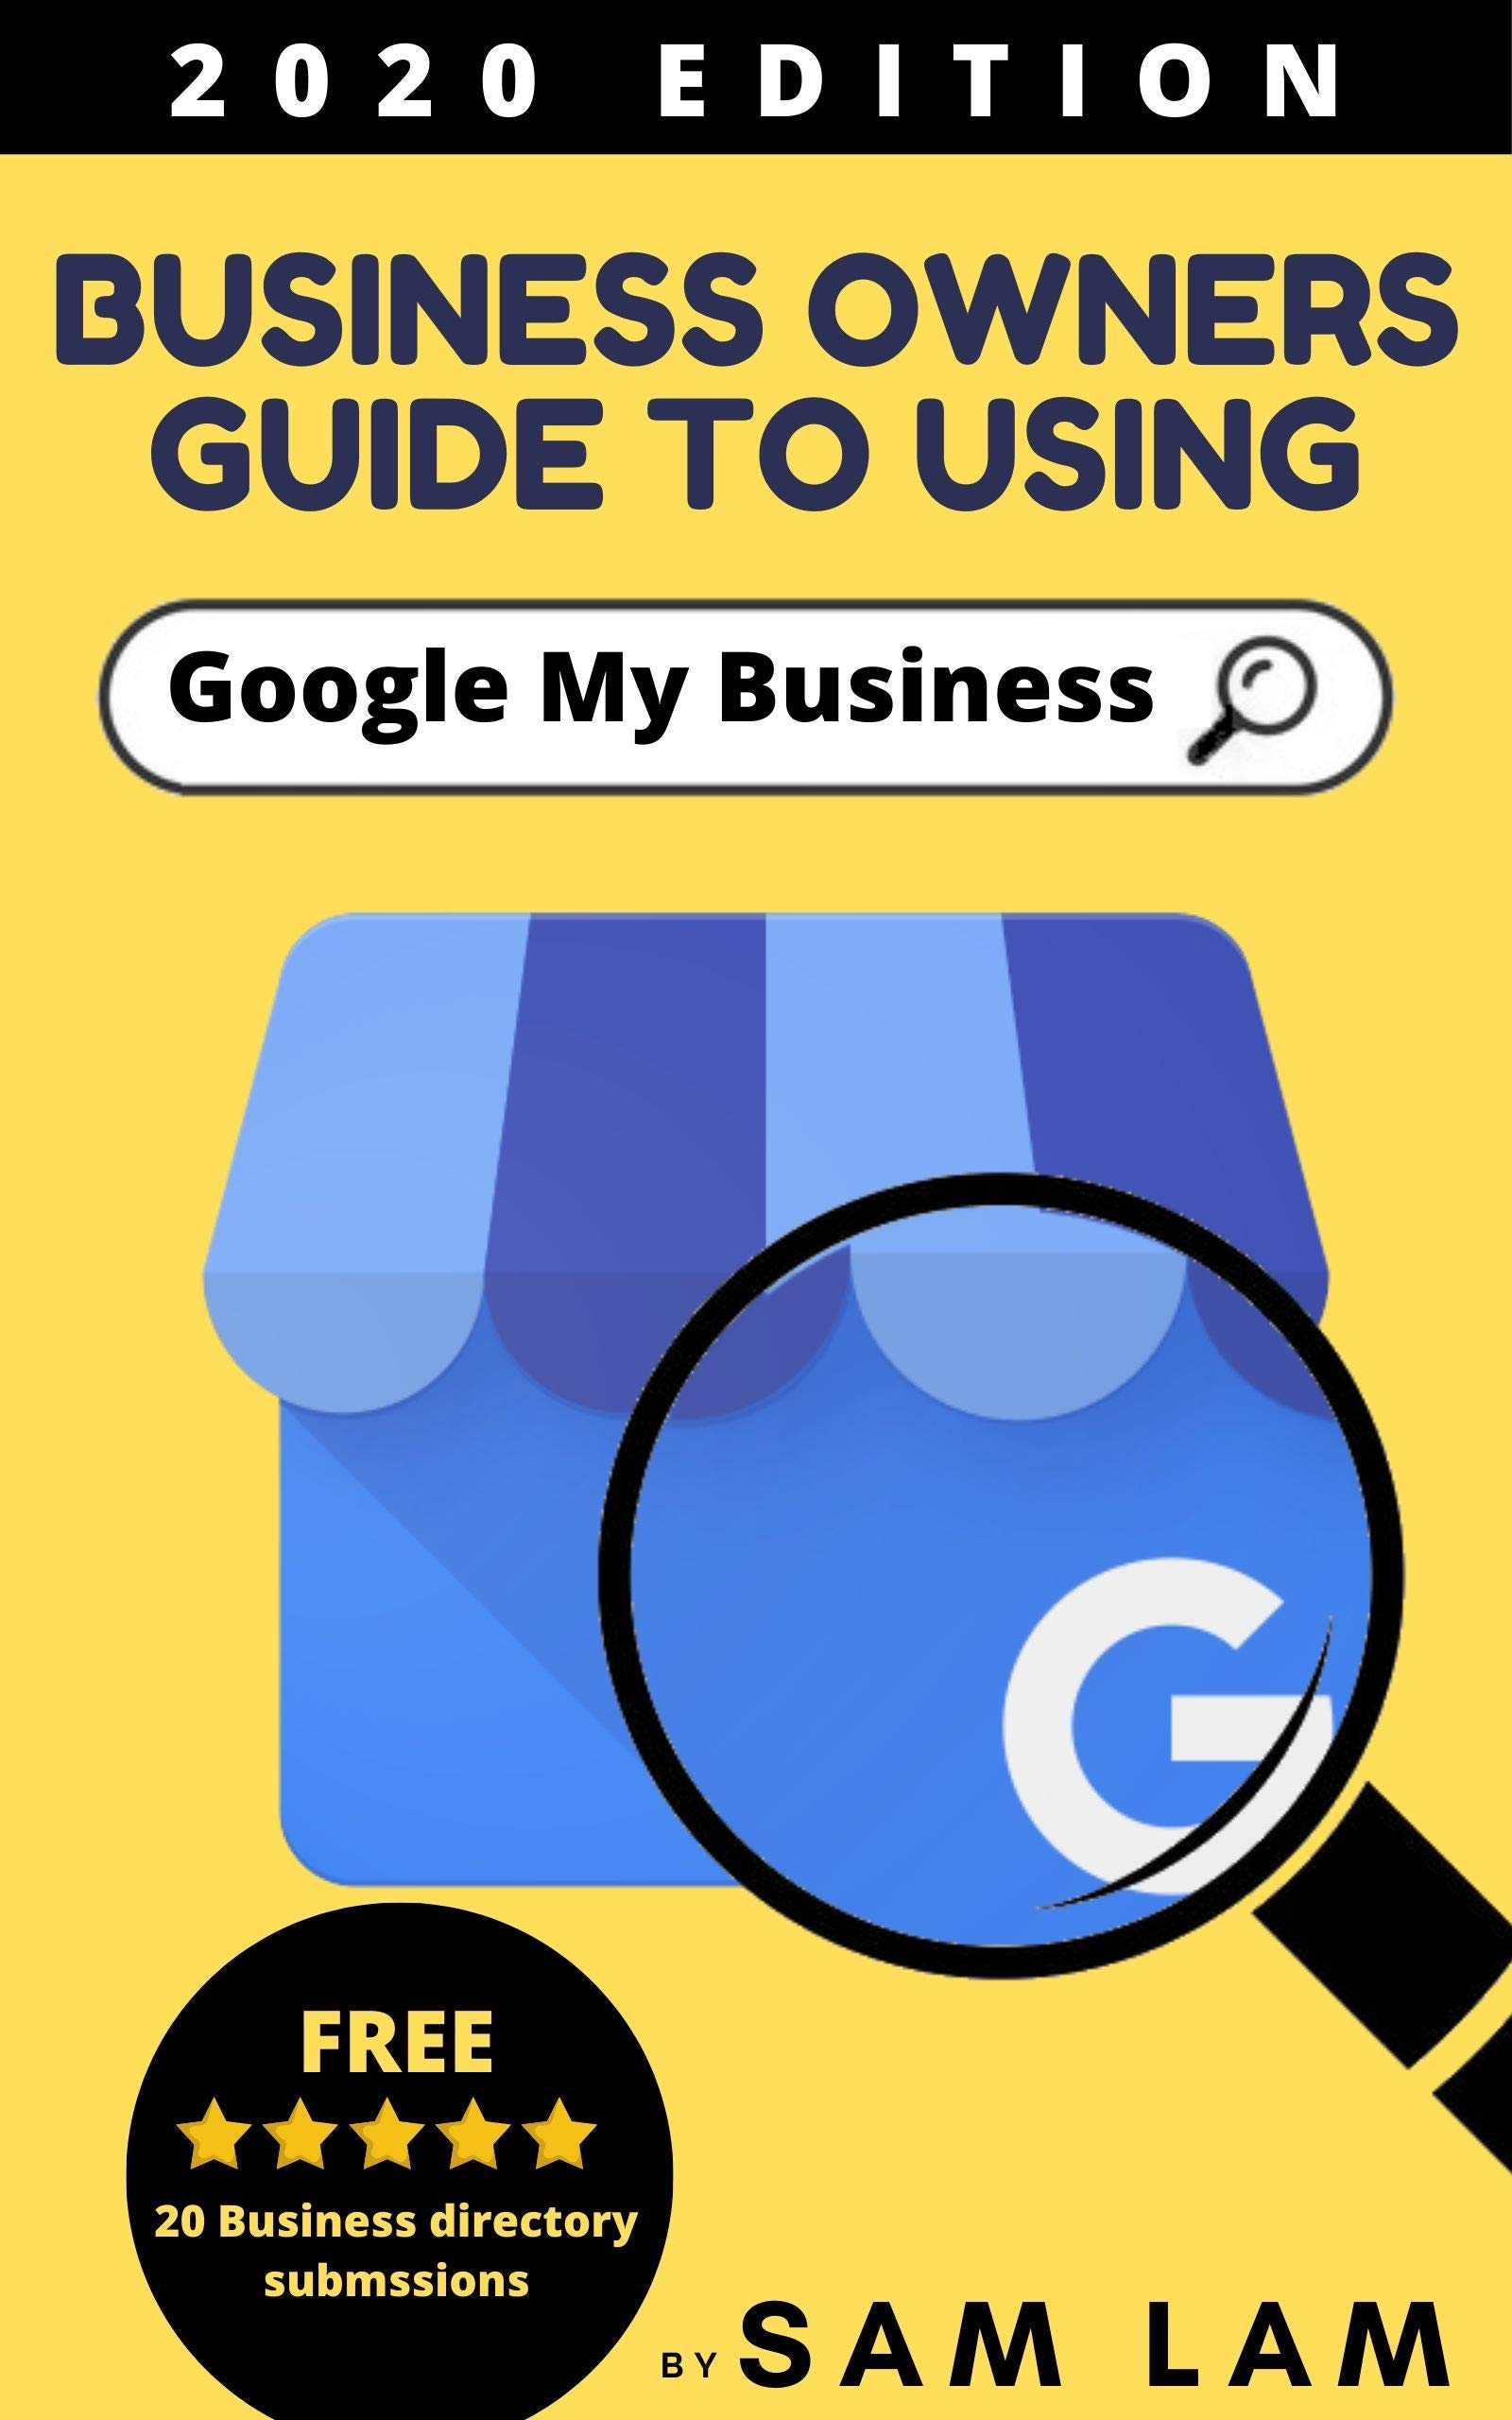 The Business Owners Guide To Using Google My Business 2020 Edition